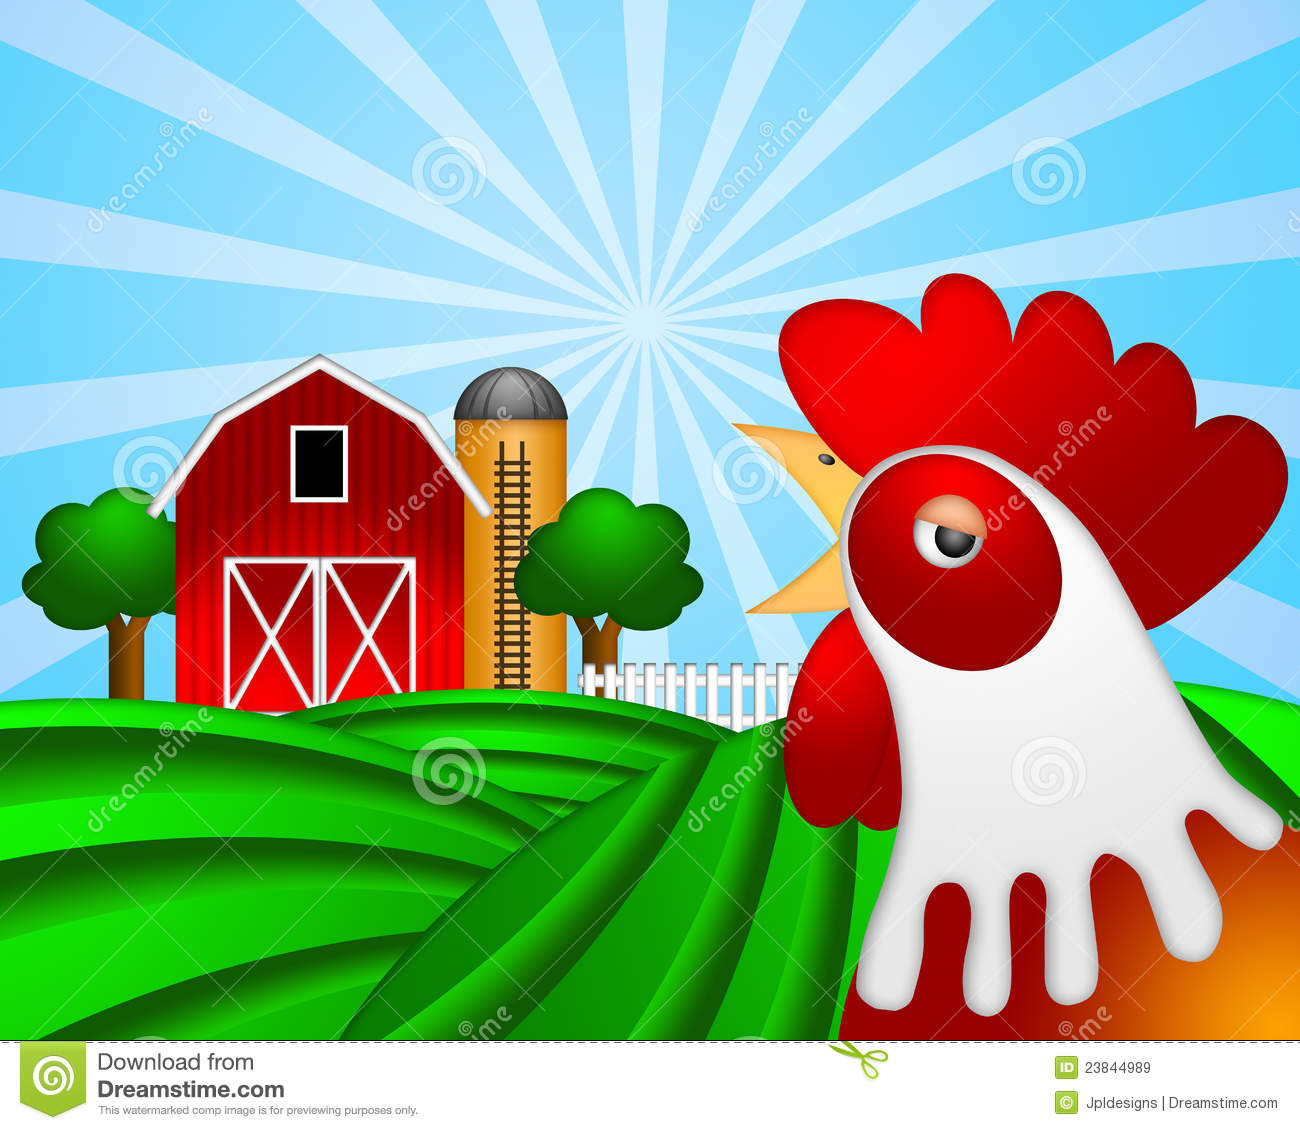 Rooster on Green Pasture with Red Barn Grain Silo